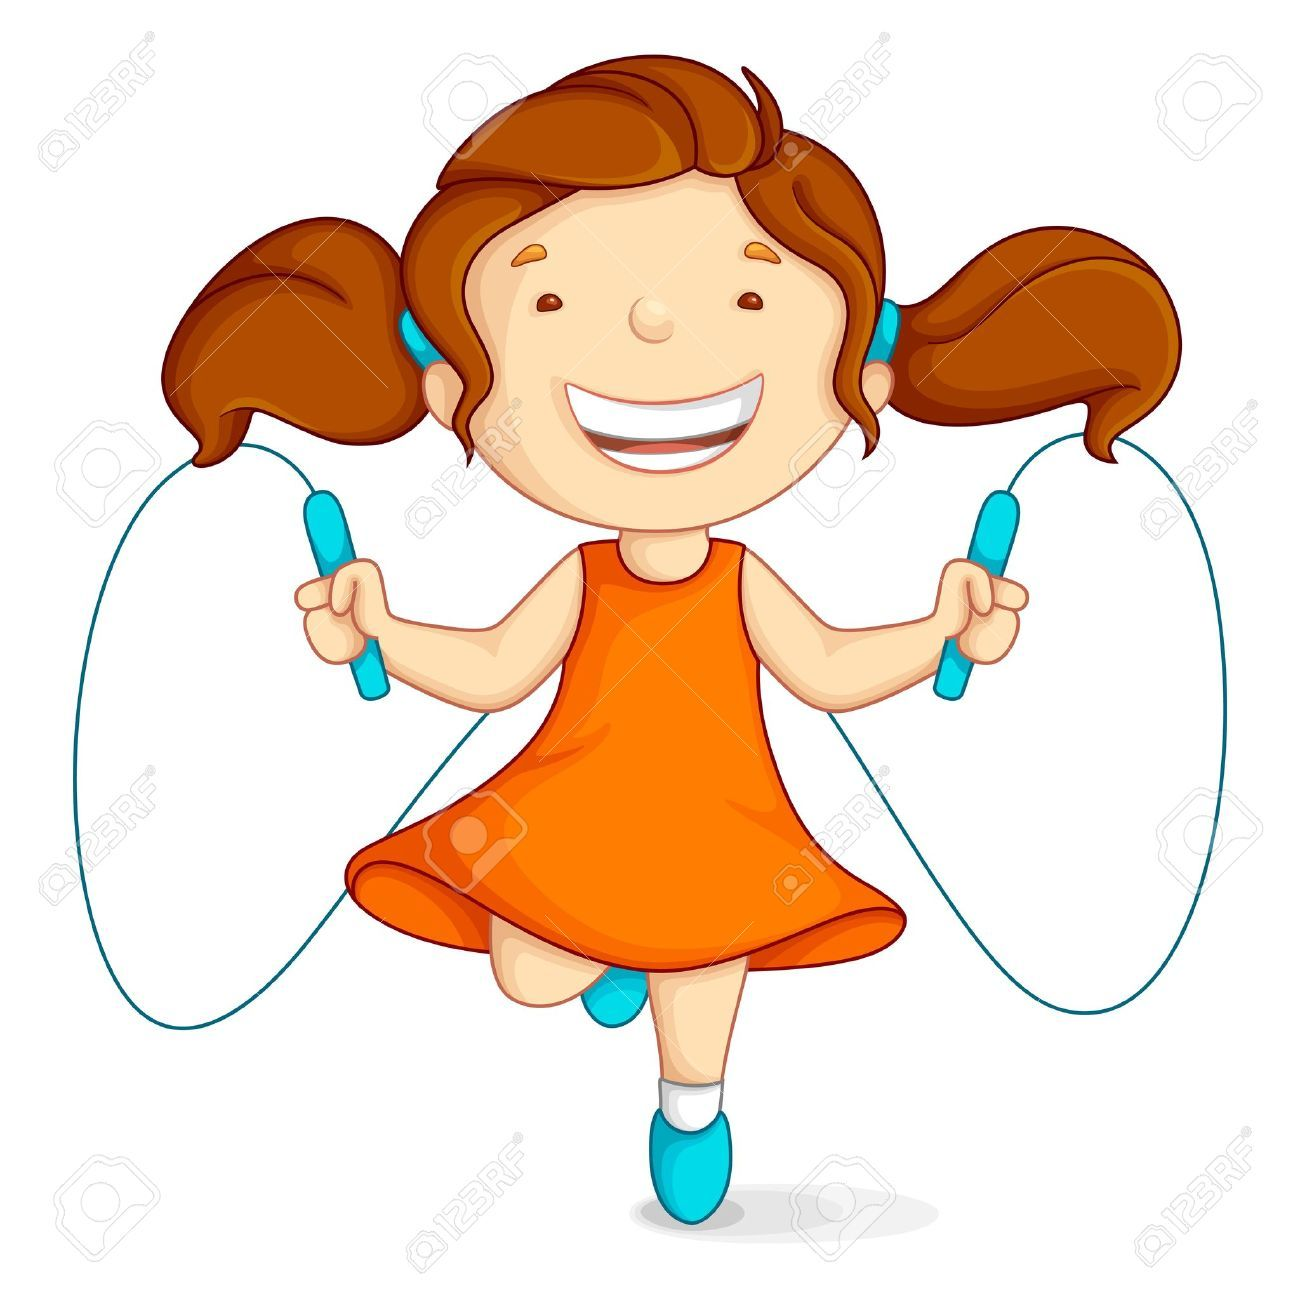 jump rope clipart at getdrawings com free for personal use jump rh getdrawings com jump rope for heart free clip art jump rope for heart clip art